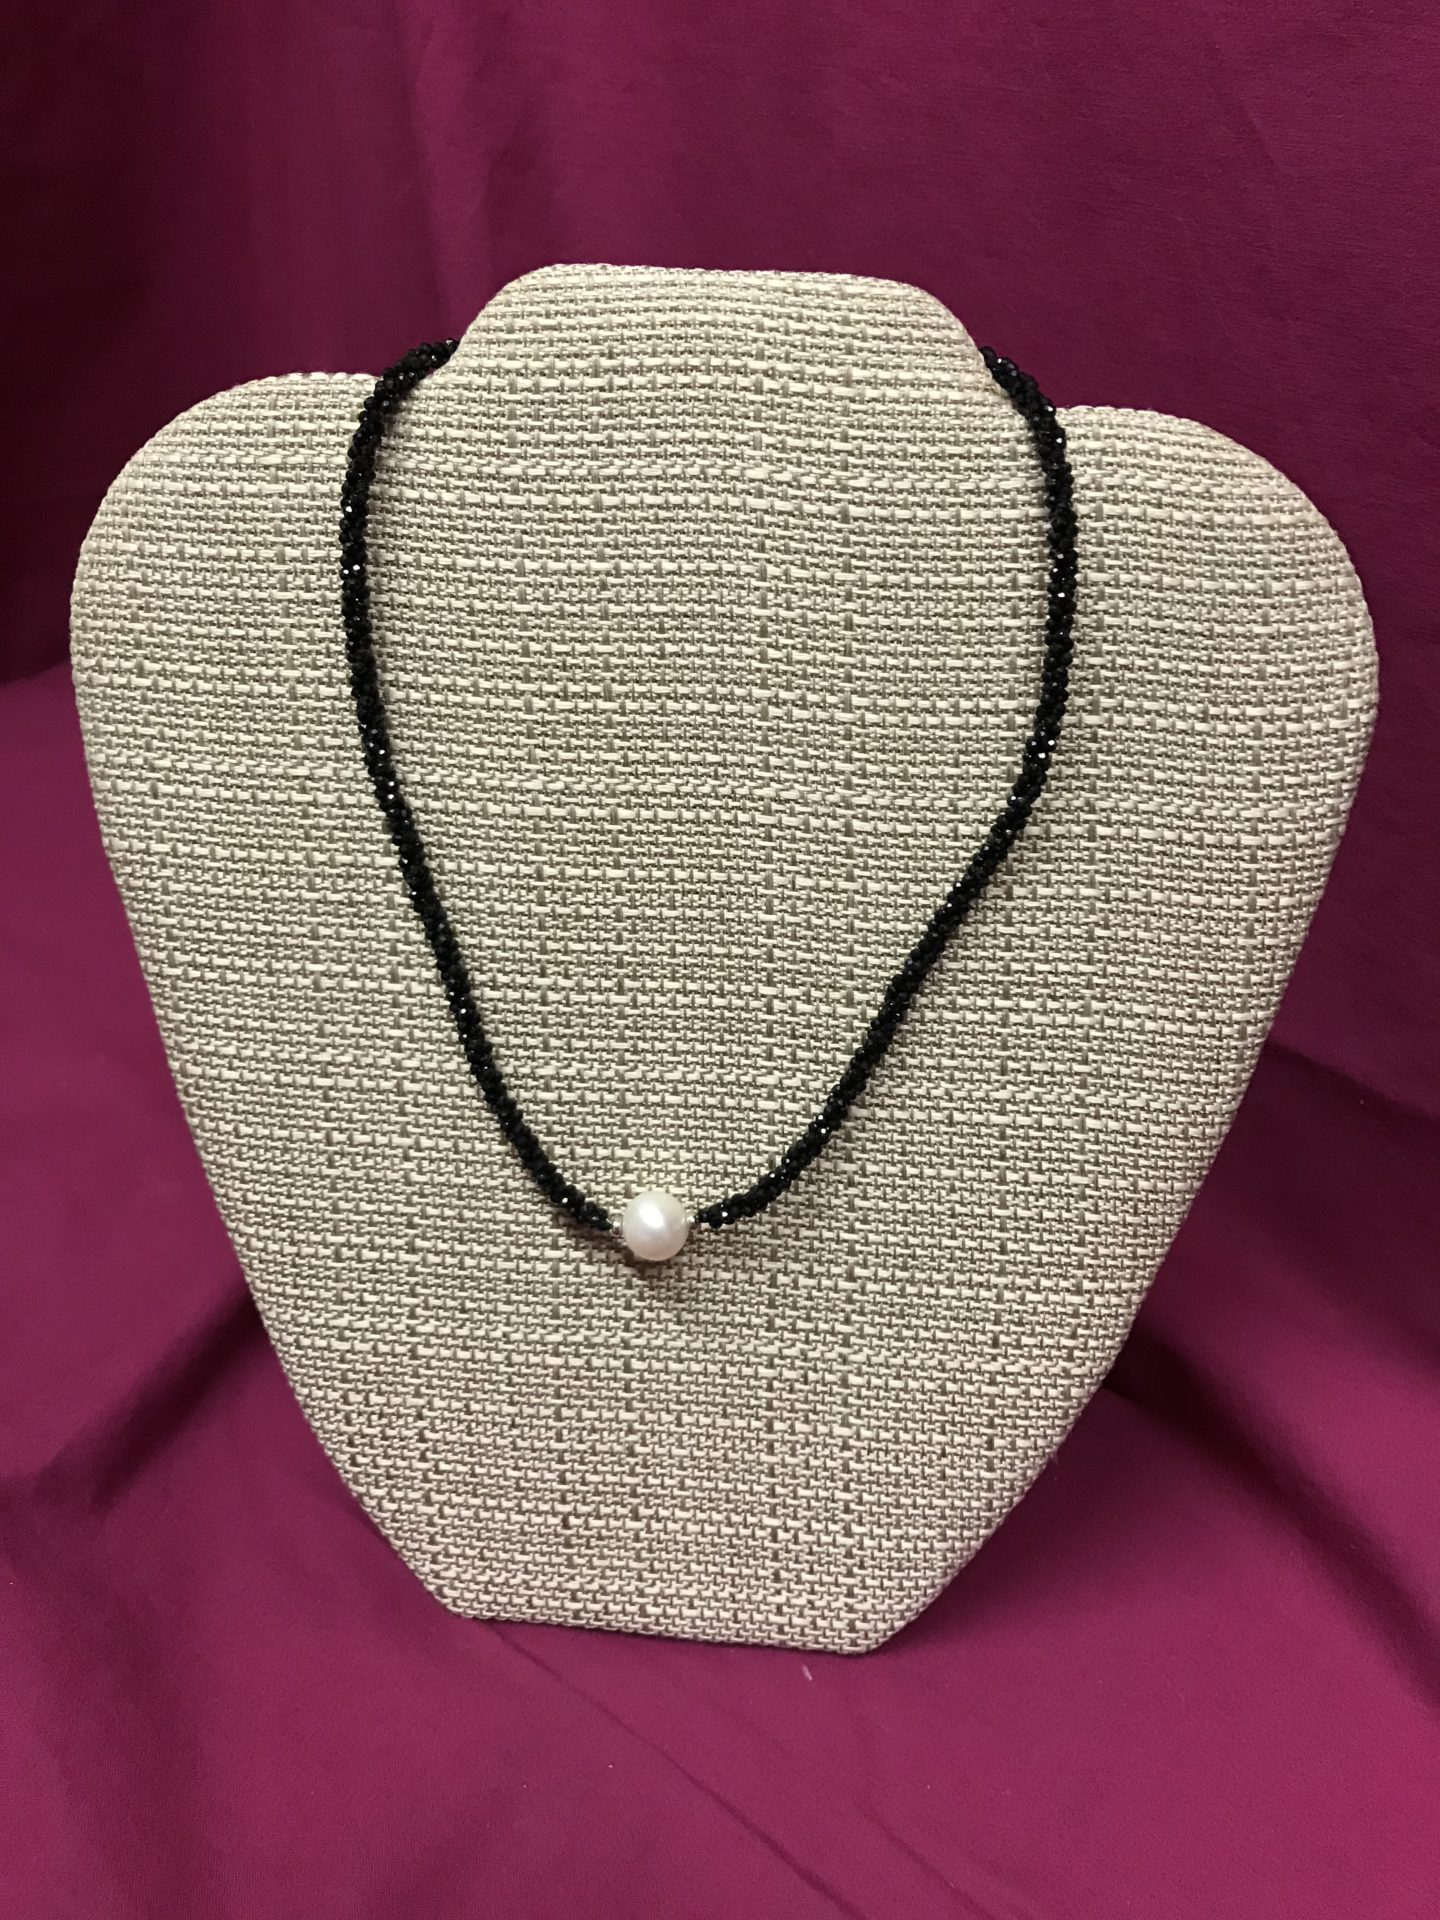 339 Black Spinel Pearl Necklace